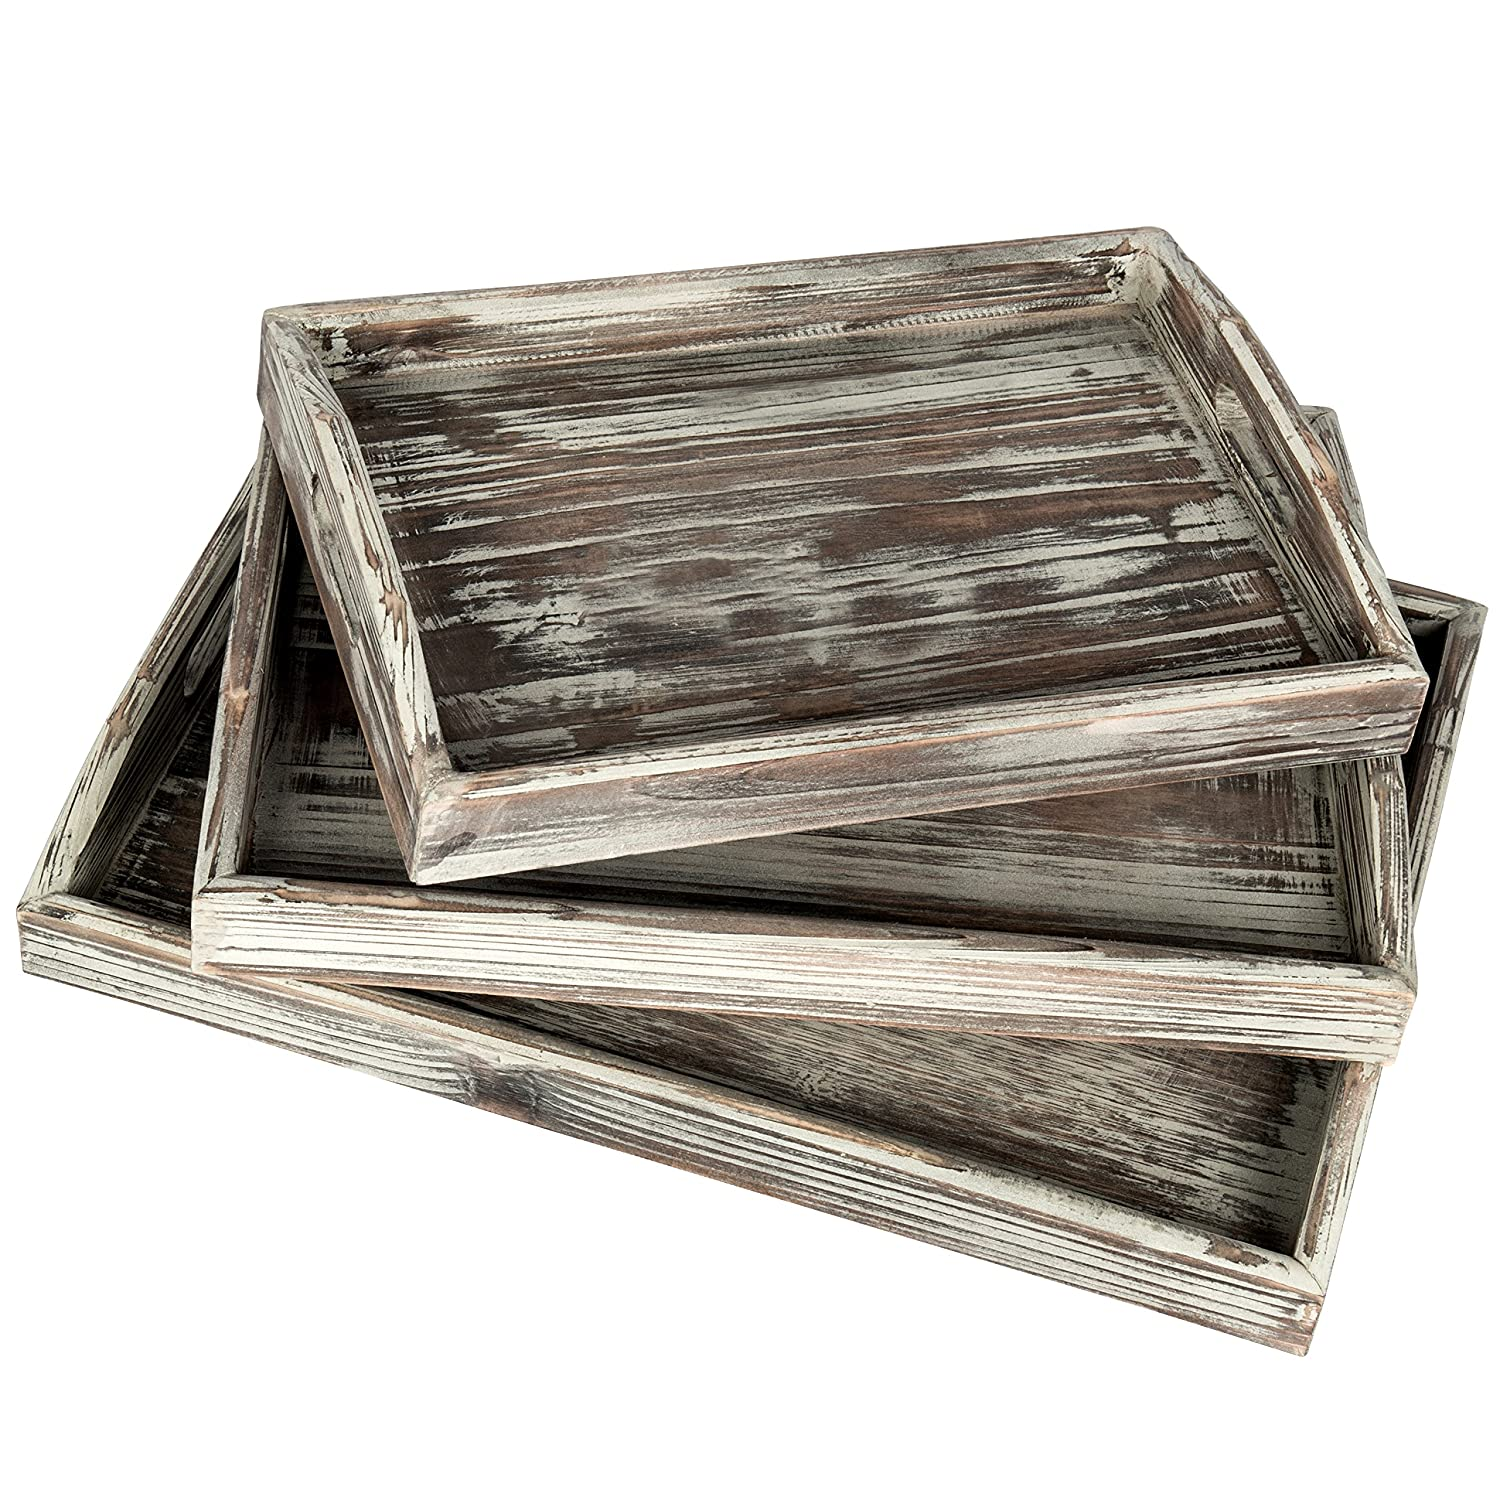 Country Rustic Torched Wood Nesting Breakfast Serving Trays with Handles, Set of 3 MyGift COMIN18JU074748